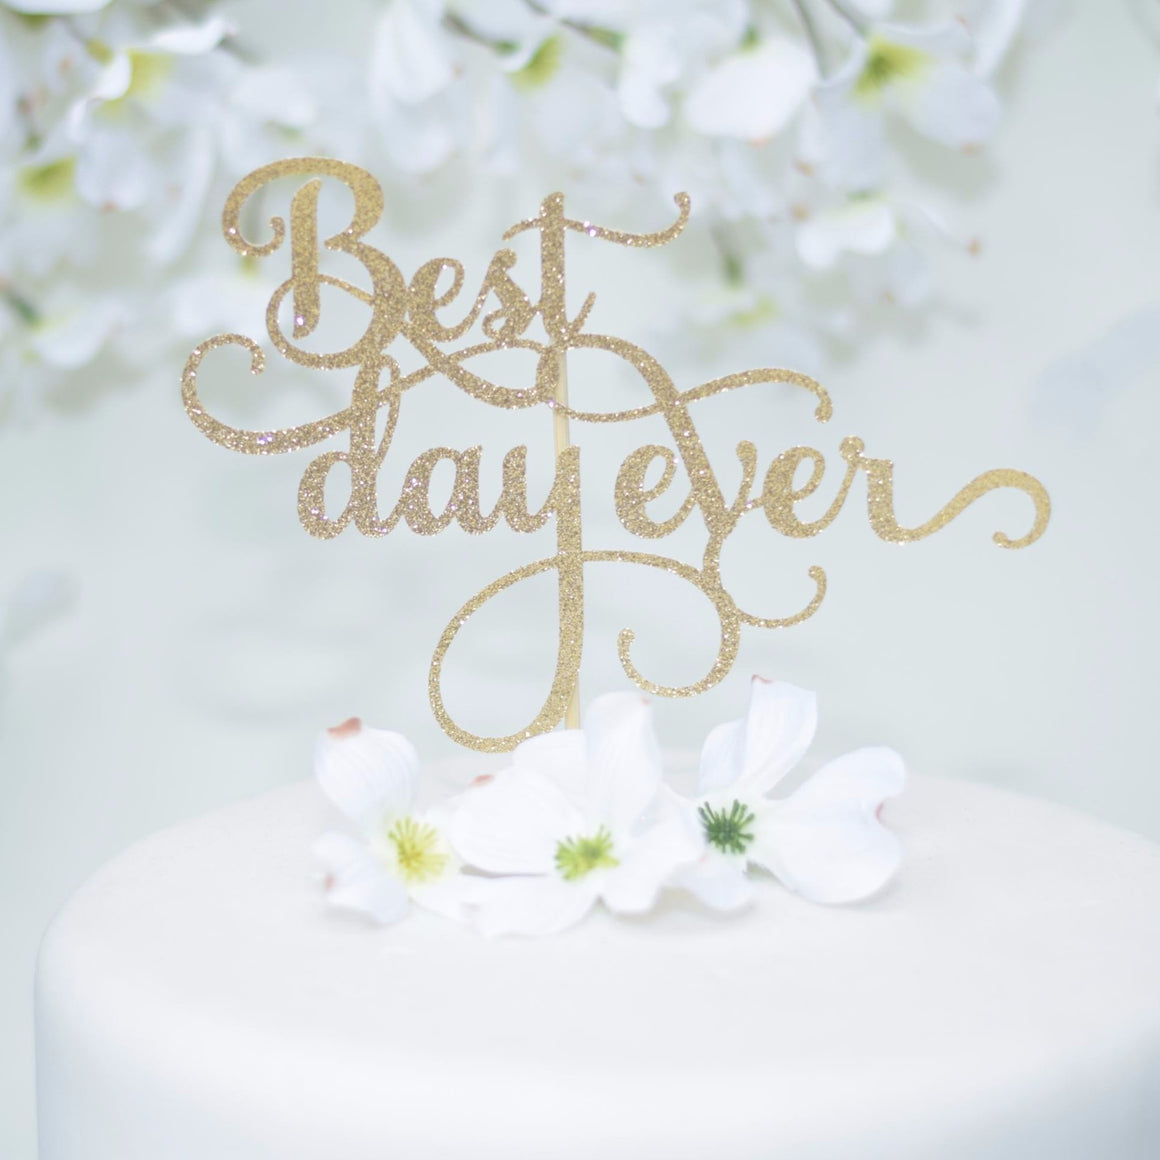 Best Day Ever gold glitter cake topper on a white cake with flower details